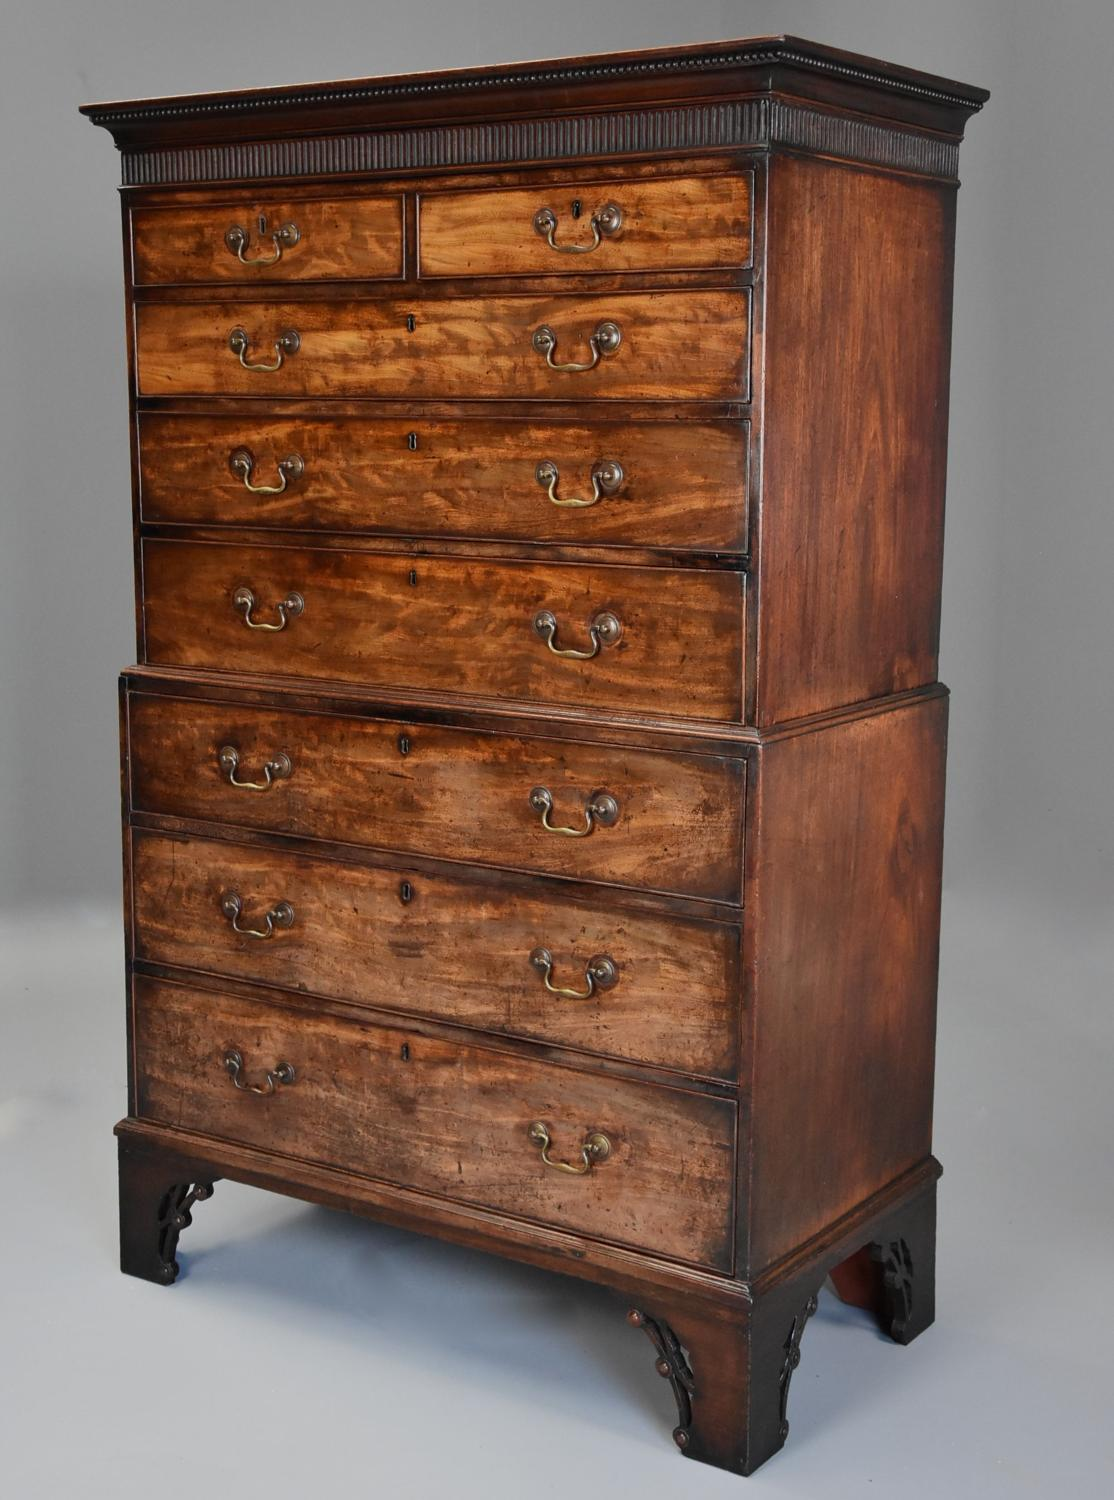 18thc mahogany chest on chest with unusual features and fine patina